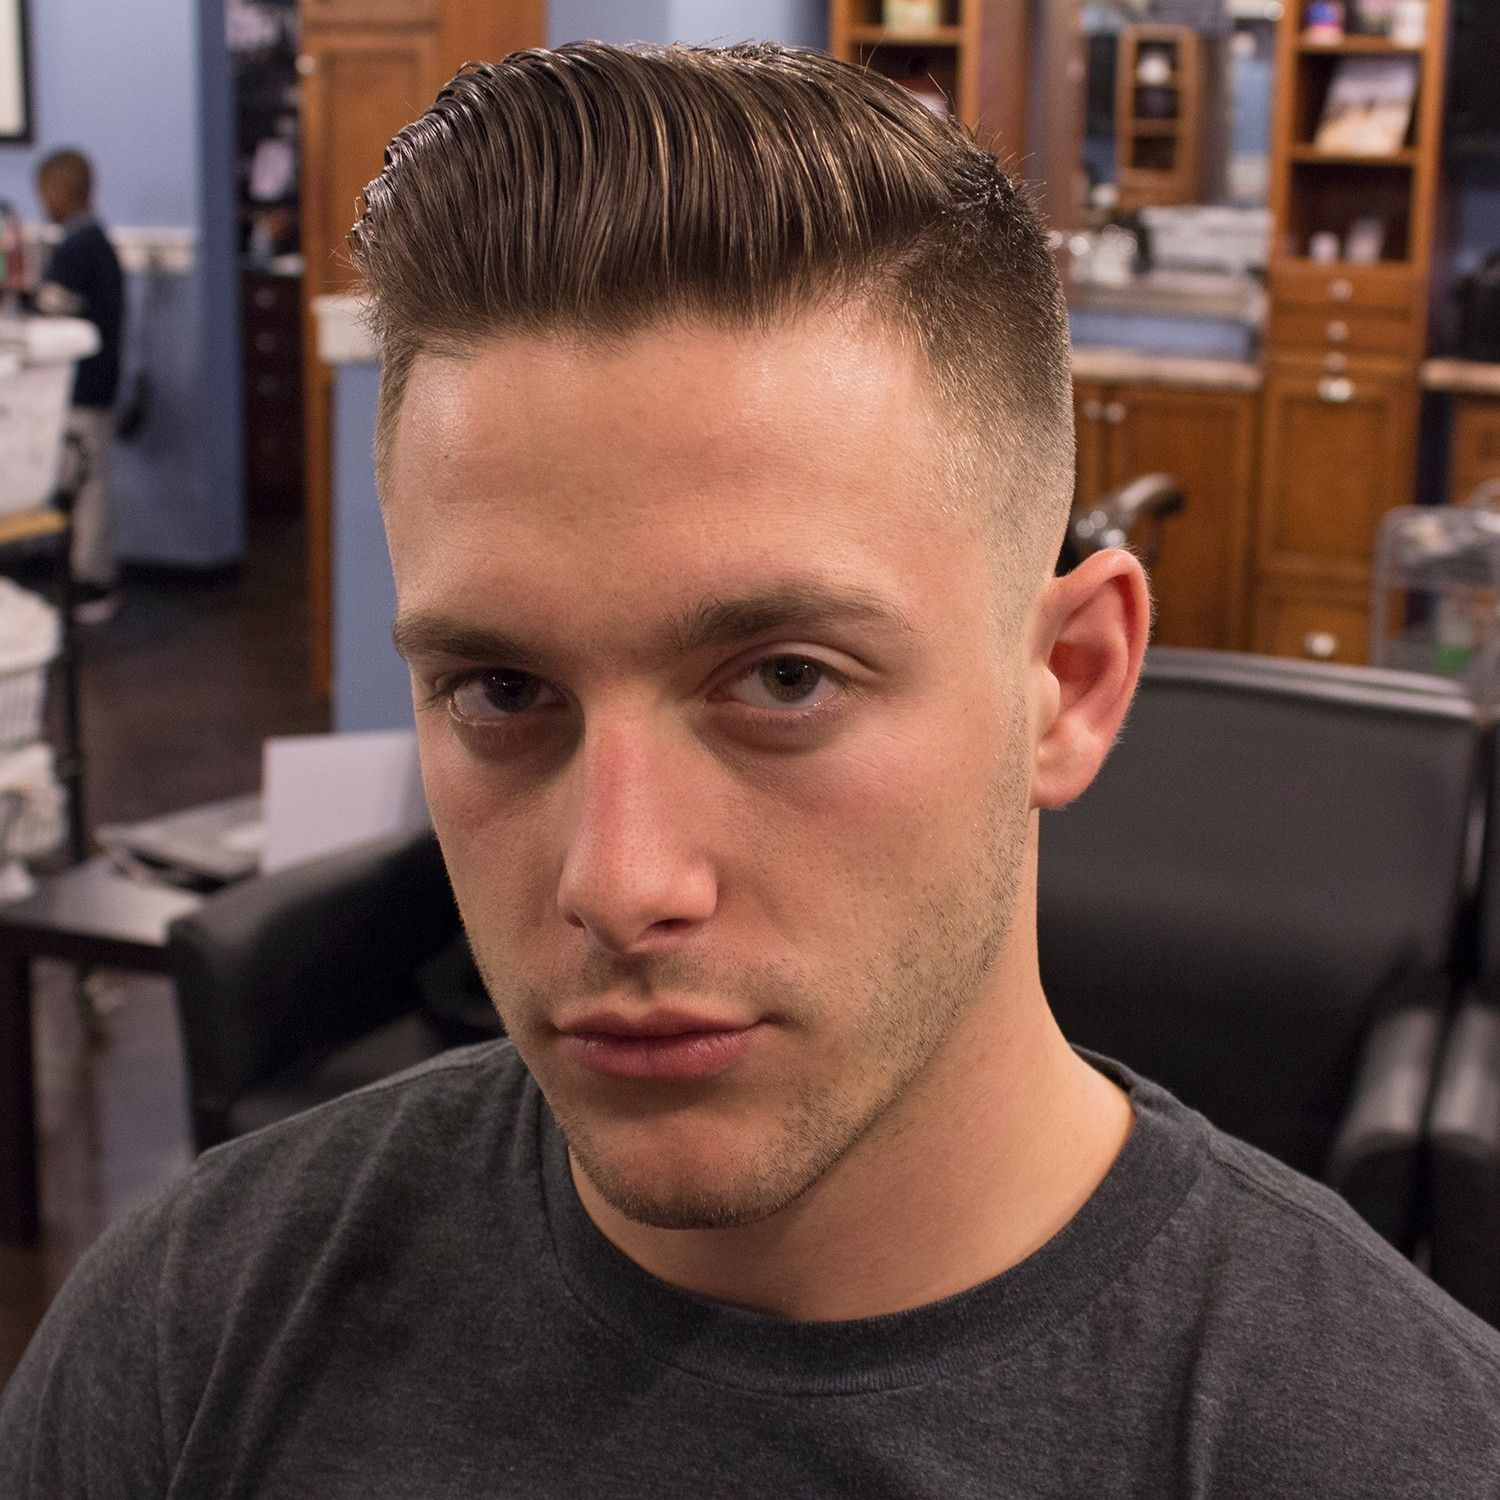 Unique Hairstyles For Men With A Double Crown Best Hair Style Men Haircuts For Men Mens Hairstyles Mens Haircuts Fade